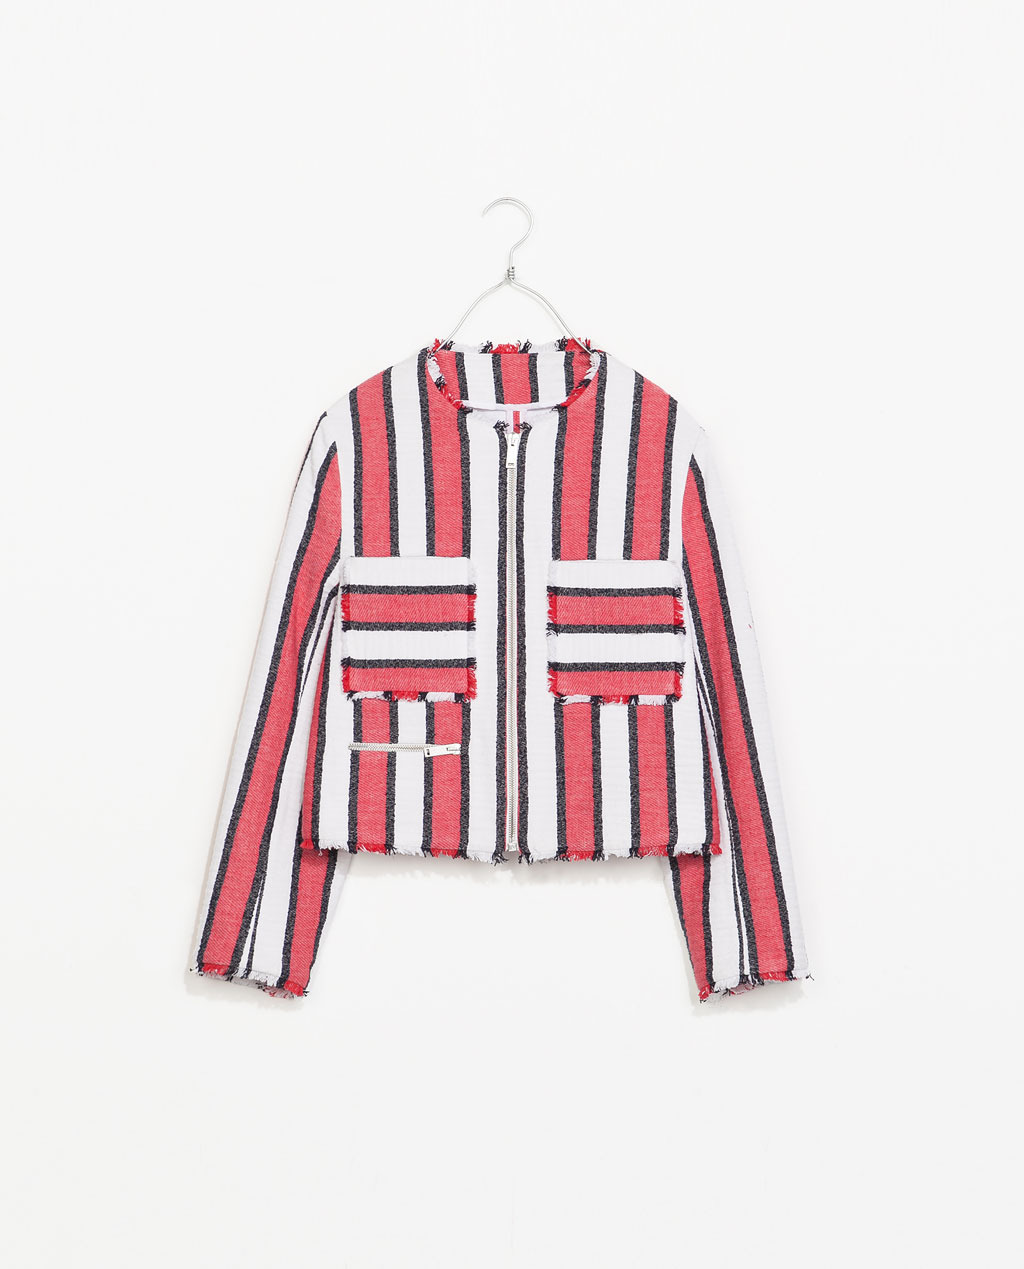 Frayed Striped Jacket - pattern: vertical stripes; style: cropped; collar: round collar/collarless; secondary colour: ivory/cream; predominant colour: true red; occasions: casual, evening, work, occasion, holiday, creative work; length: standard; fit: straight cut (boxy); fibres: cotton - mix; sleeve length: 3/4 length; sleeve style: standard; collar break: high; pattern type: fabric; pattern size: standard; texture group: tweed - light/midweight; season: s/s 2014